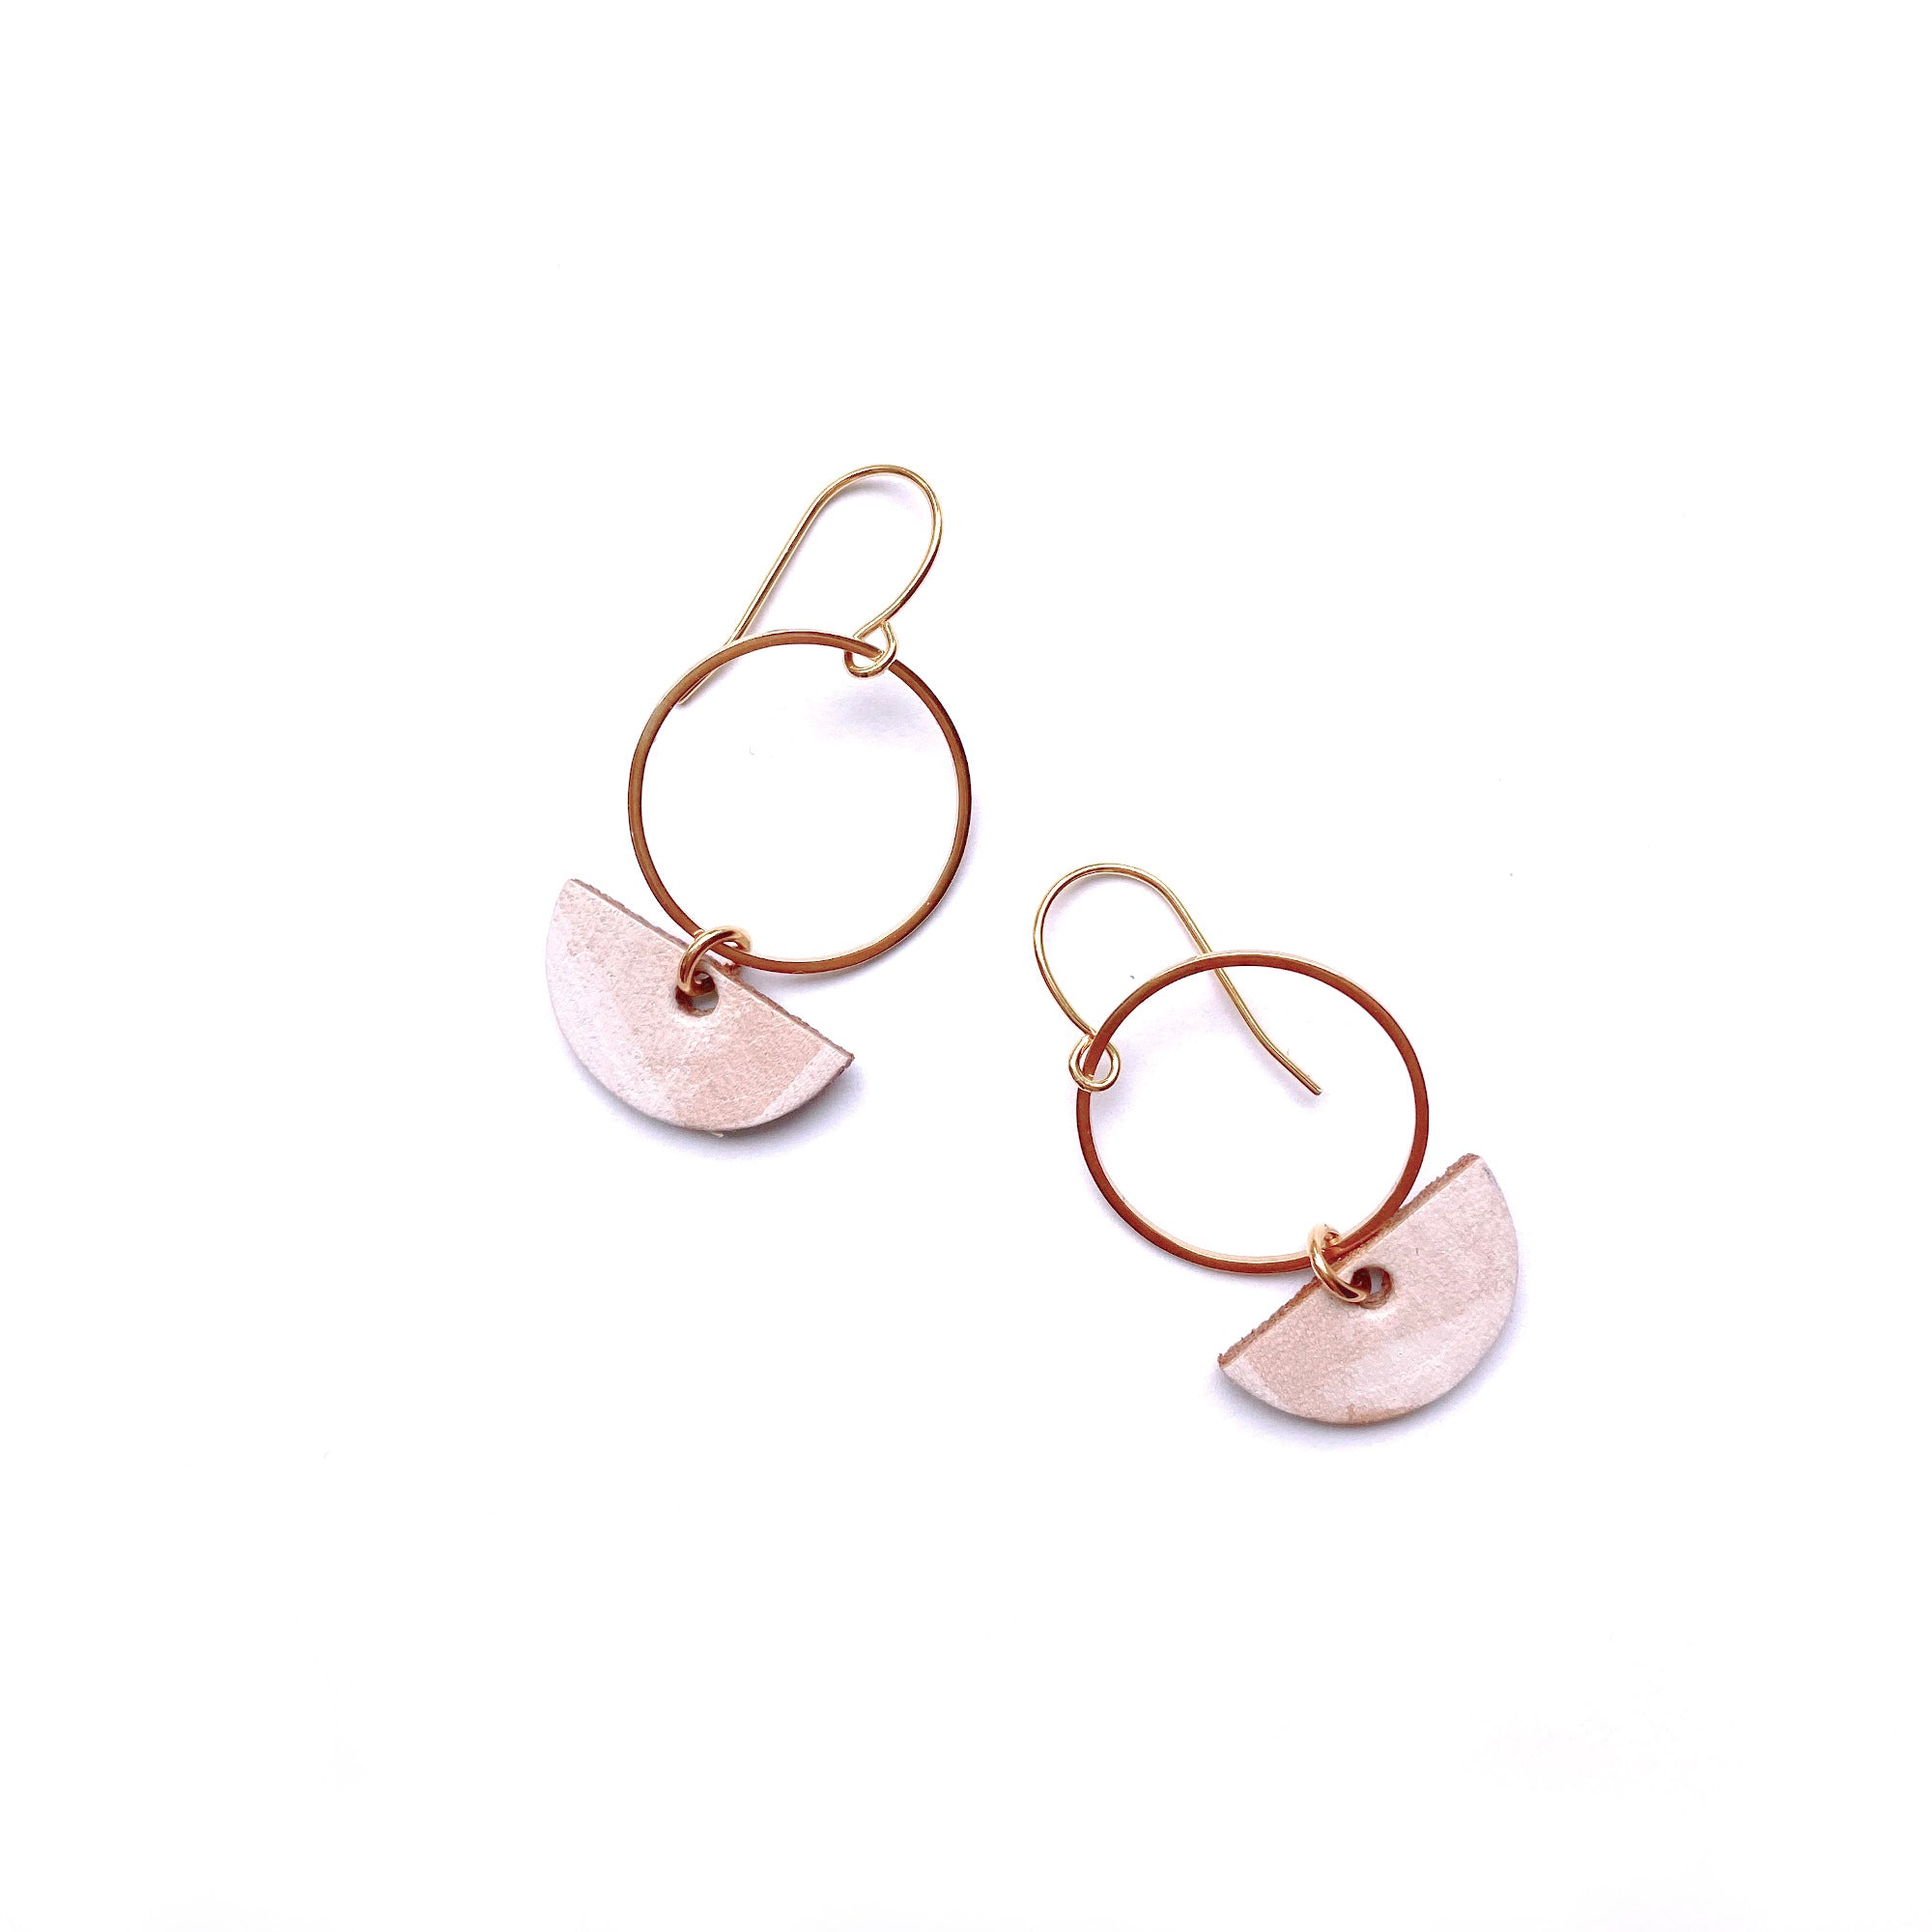 Small circle dangle earrings in white